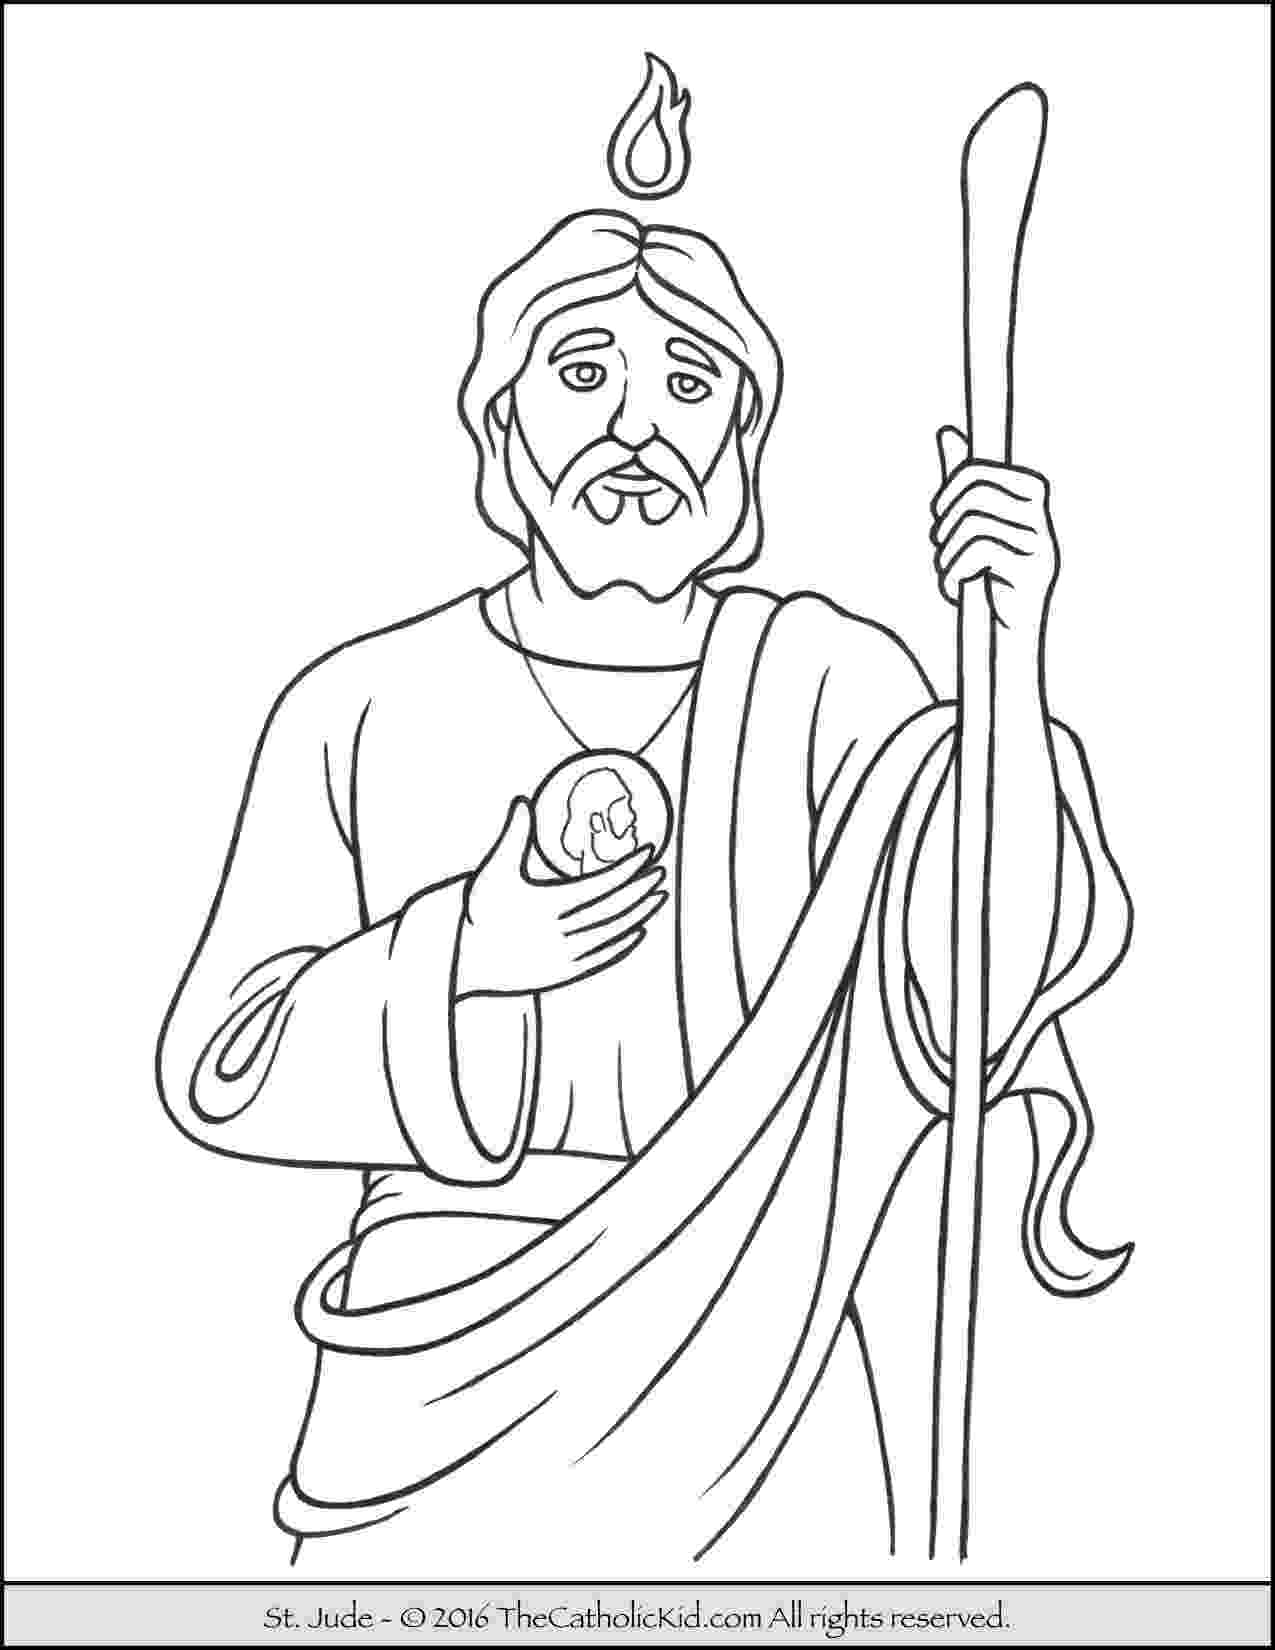 peter and andrew meet jesus coloring page saint jude coloring page the catholic kid saint meet andrew coloring jesus peter page and